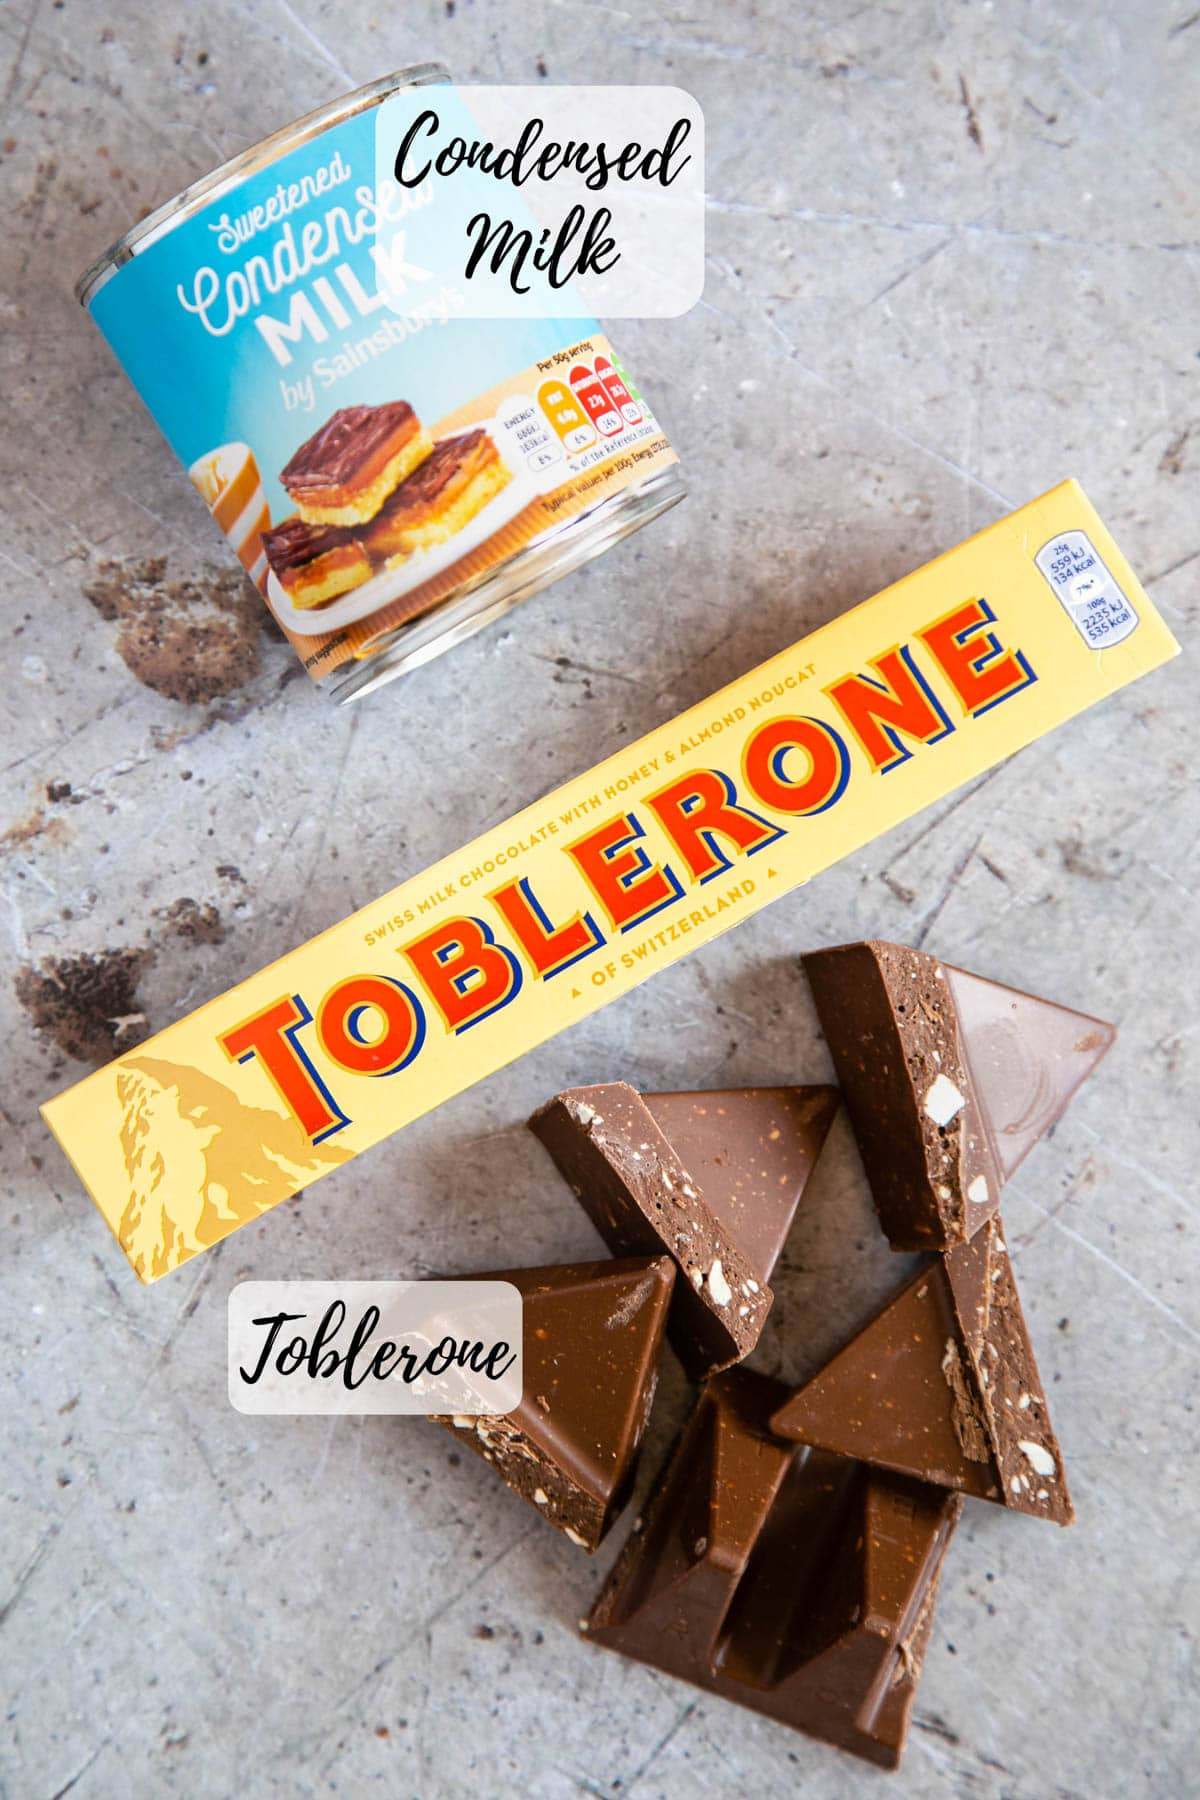 Only two ingredients for Toblerone fudge - a bar of Toblerone and a can of condensed milk.